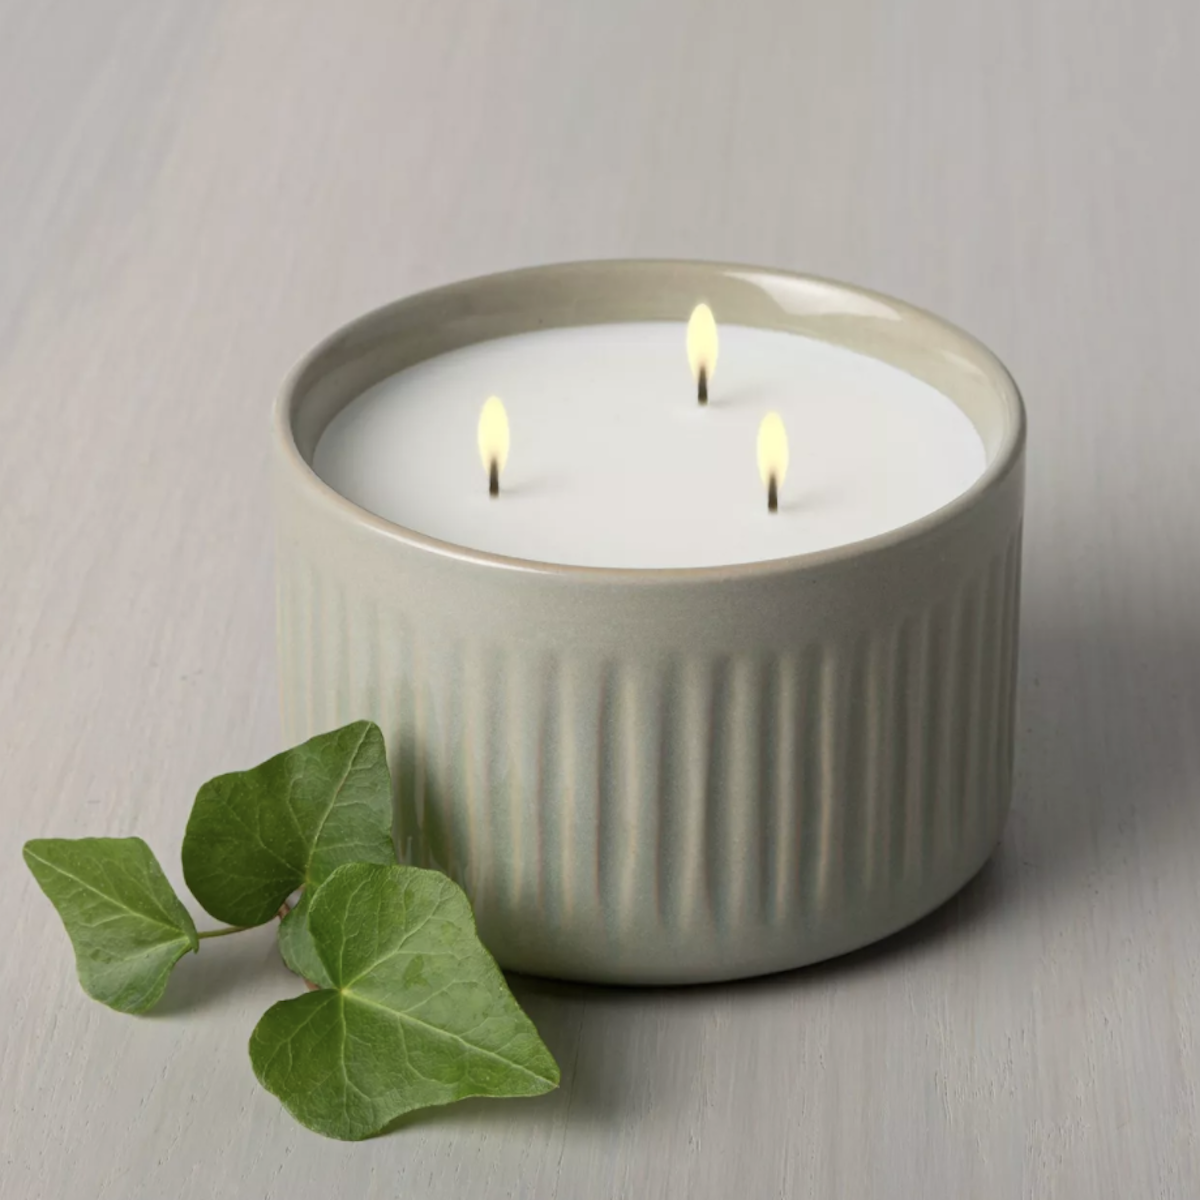 Magnolia moss and ivy candle at Target